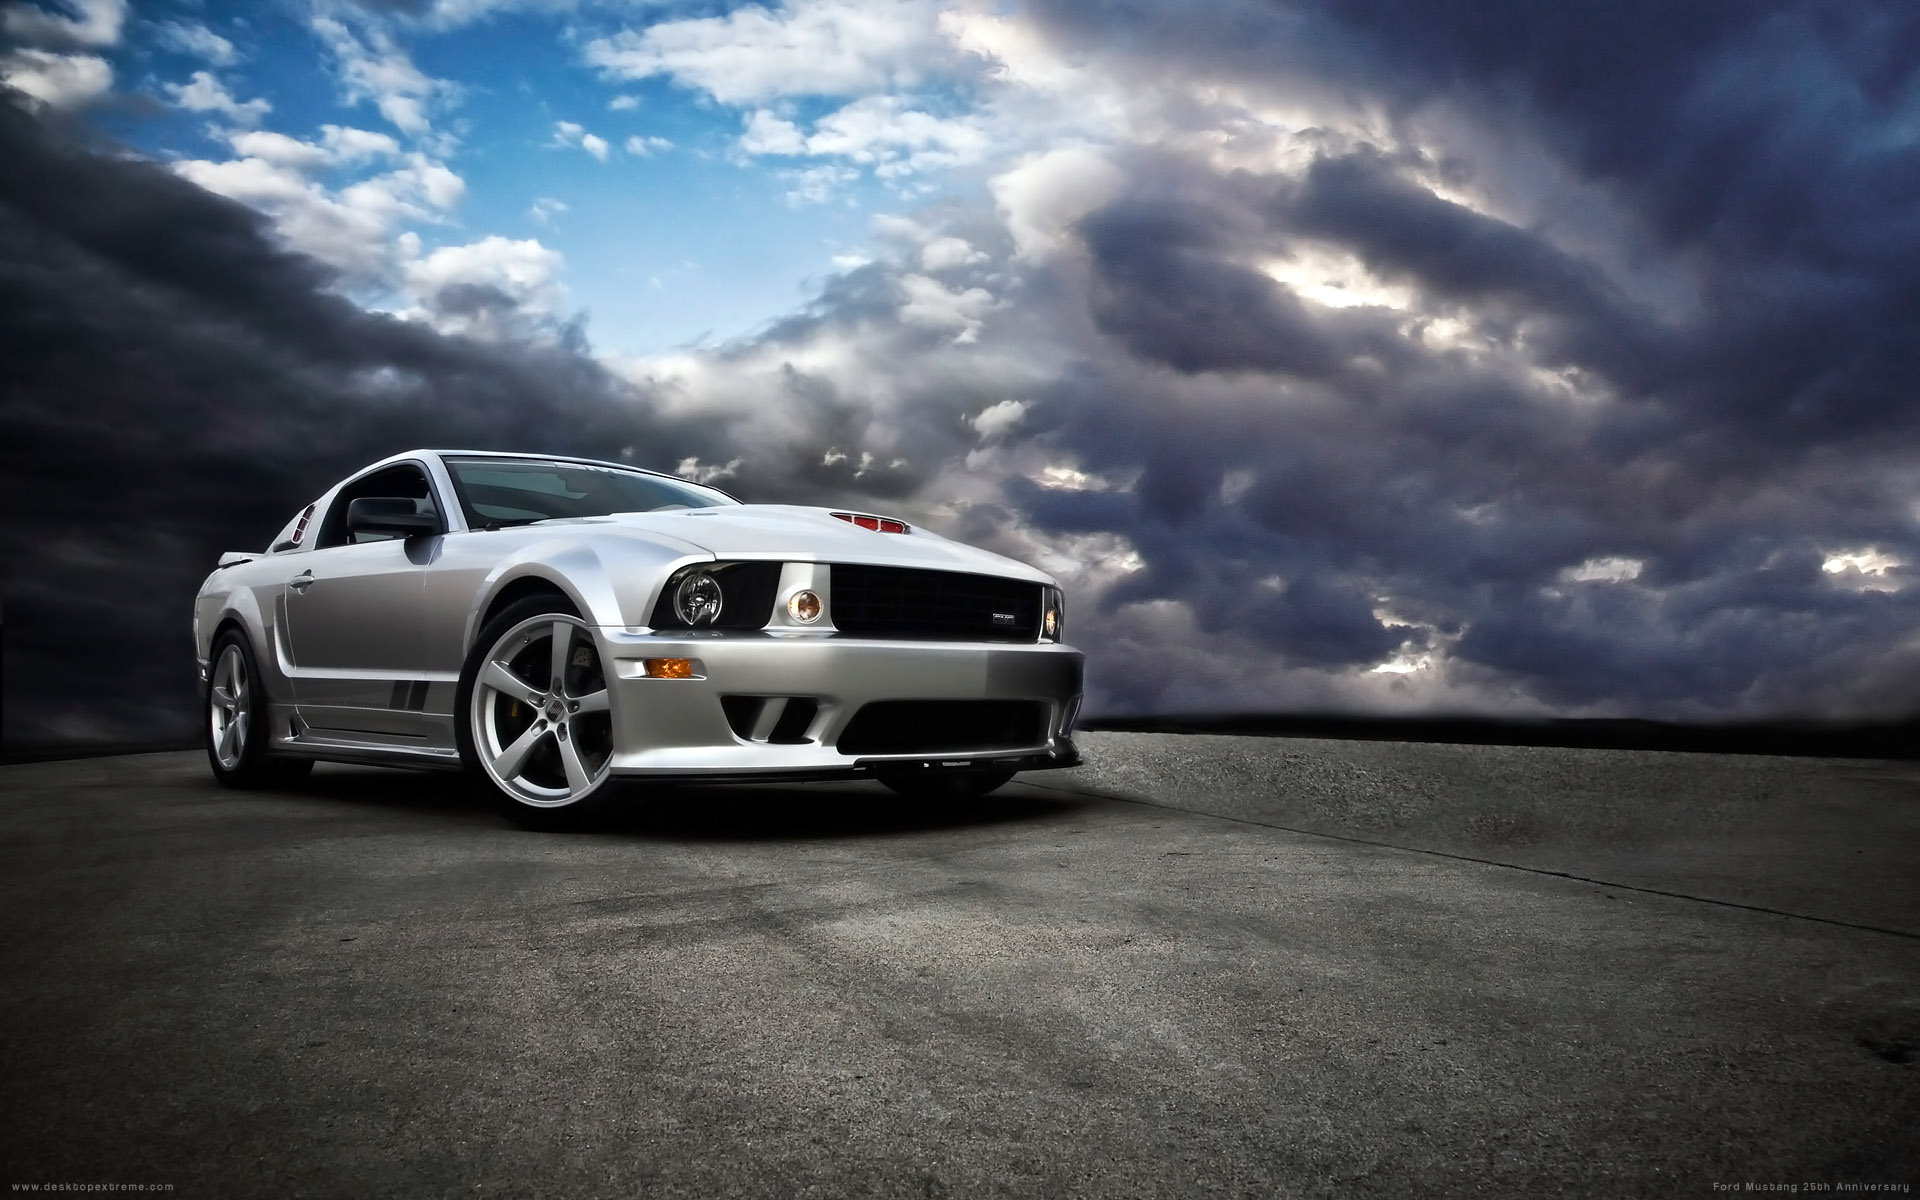 Ford Mustang GT HD Wallpaper HD Desktop Wallpaper 1920x1200